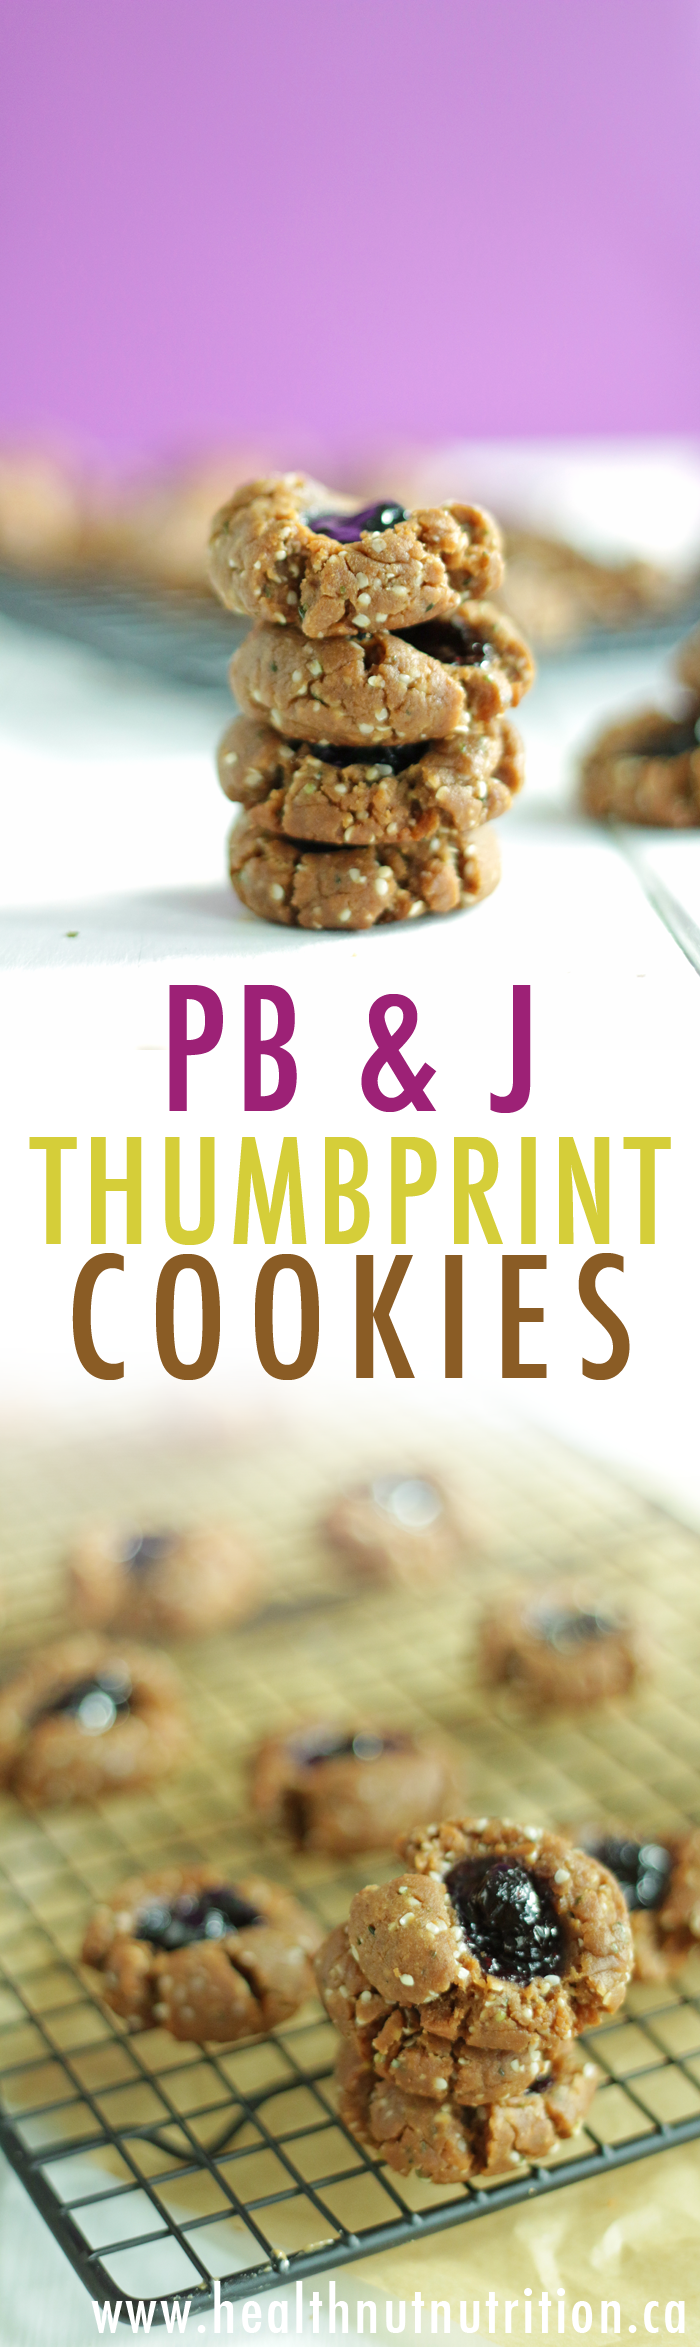 Super EASY & HEALTHY Peanut Butter & Jelly Cookies! | HEALTHNUT NUTRITION